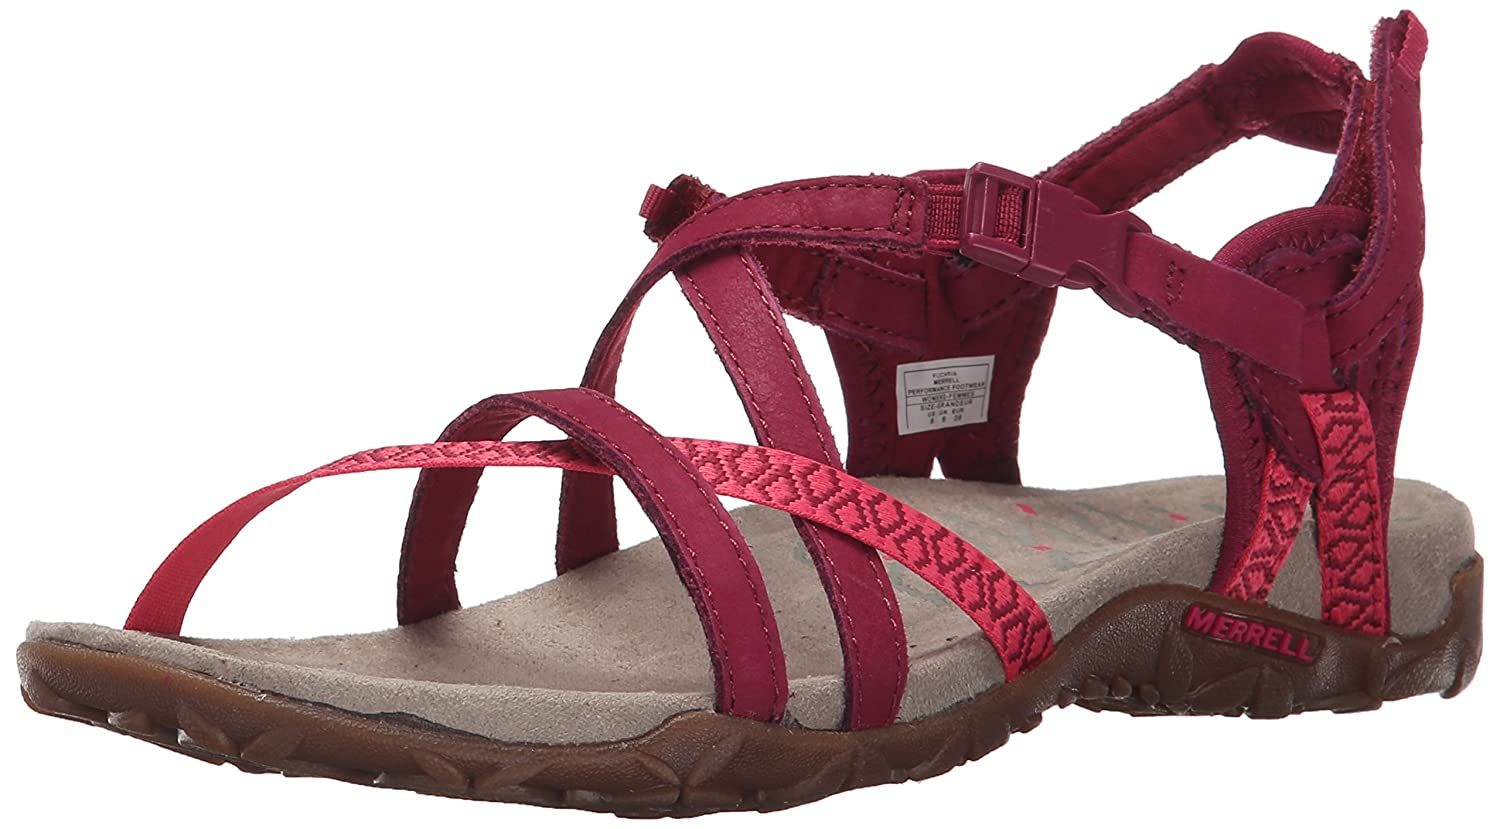 a239862eefc9 Merrell Women s Terran Lattice Ii Heel Sandals Pink (Fuchsia Fuchsia) 4 UK   Buy Online at Low Prices in India - Amazon.in